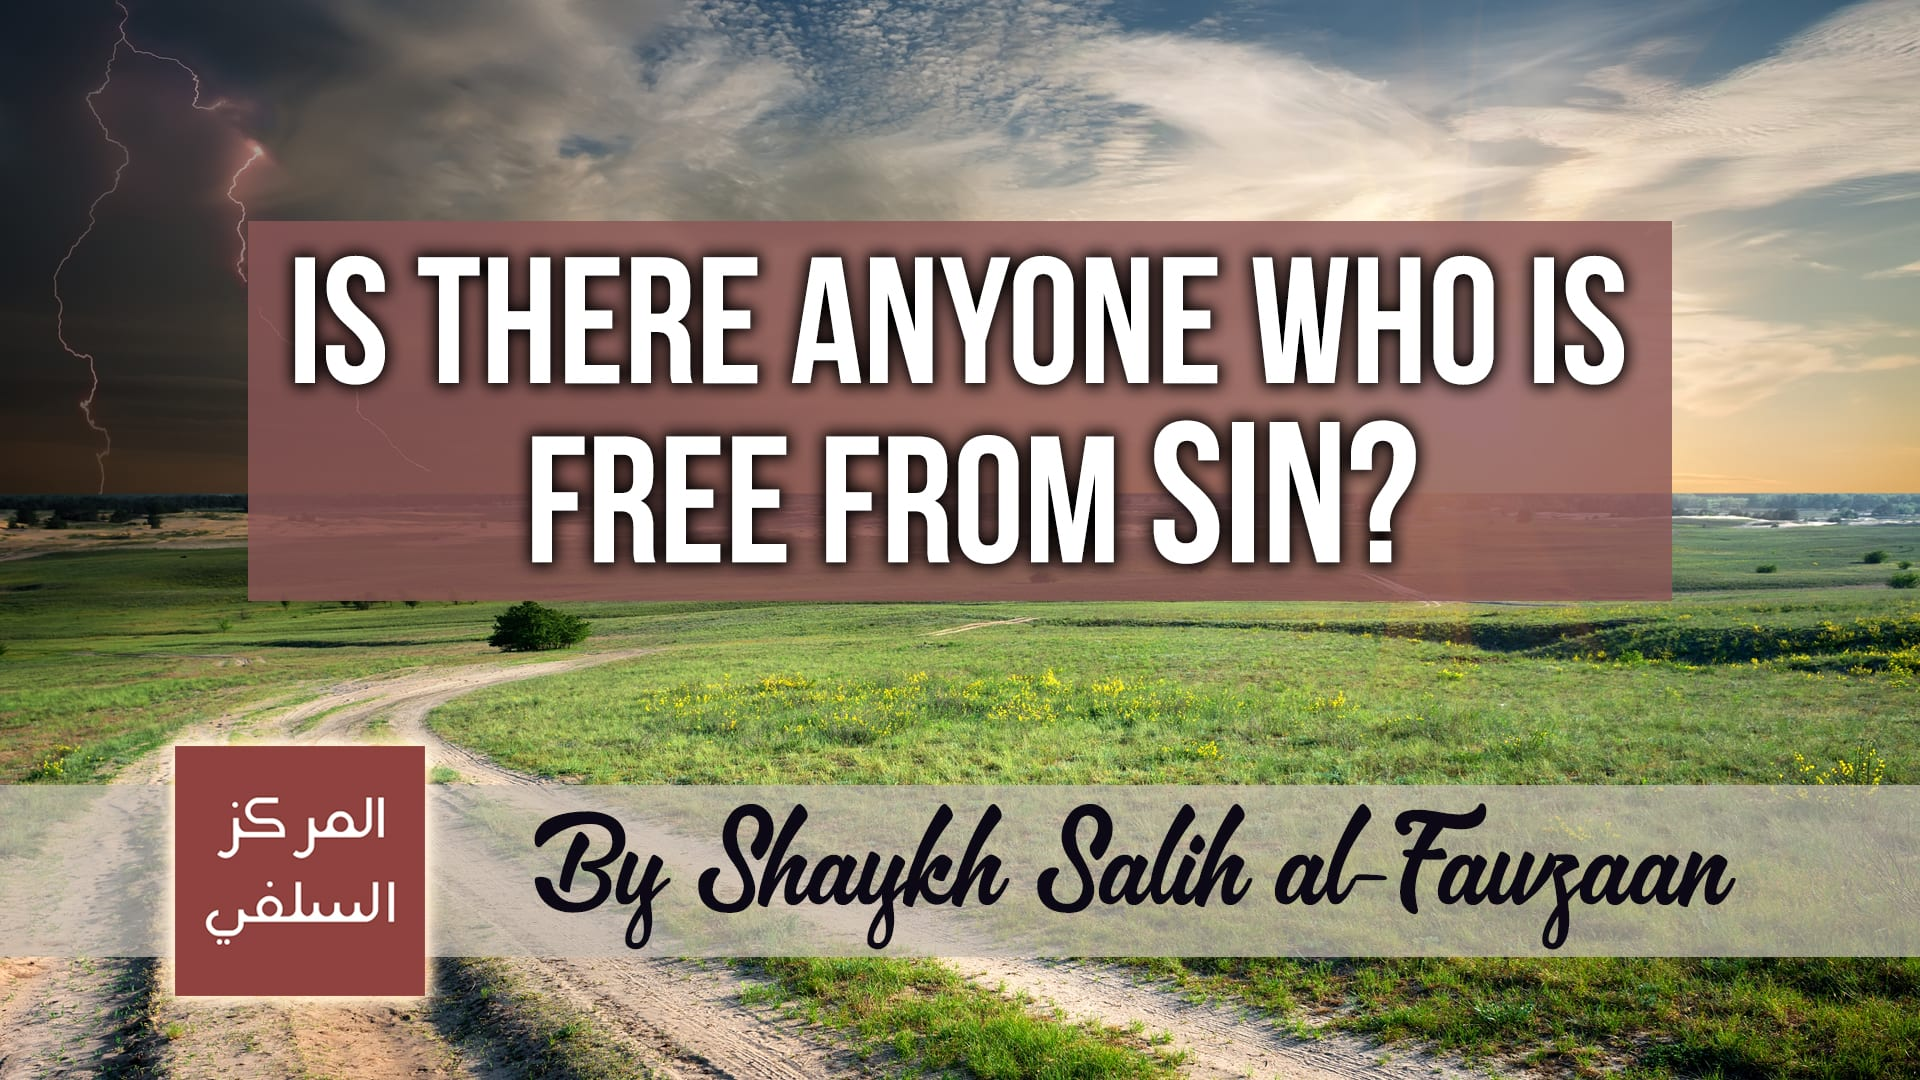 Video: Is There Anyone Who is Free from Sin? – Shaykh Fawzaan